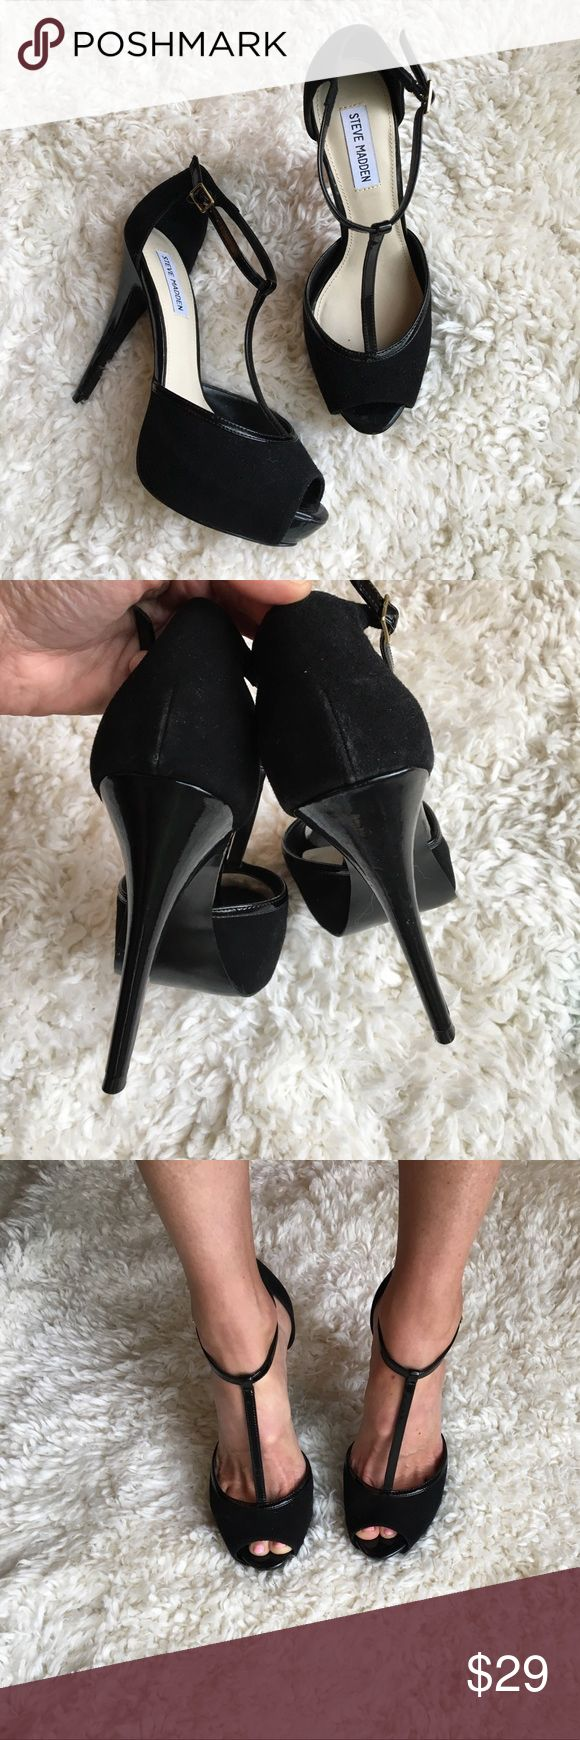 Black Suede Mary Jane Platform Peep Toe Heels Sexy Black Suede Mary Jane Platform Peep Toe Heels. These heels are in excellent like new condition! The heel measures at 5.25 inches. Steve Madden Shoes Platforms